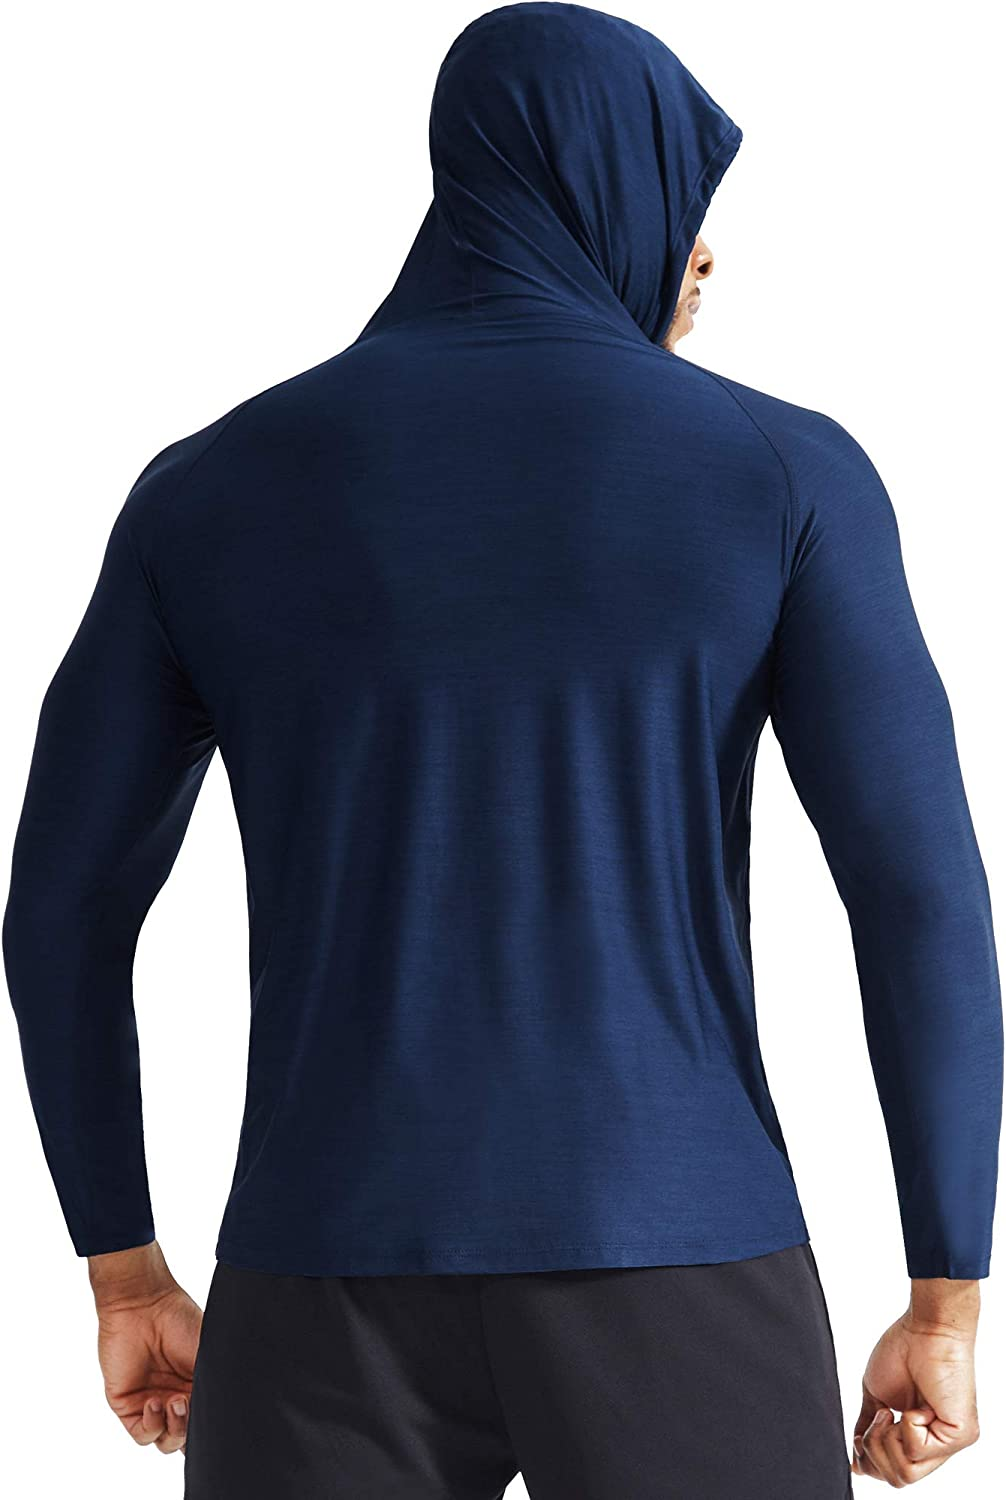 Neleus Mens Dry Fit Athletic Workout Running Shirts Long Sleeve